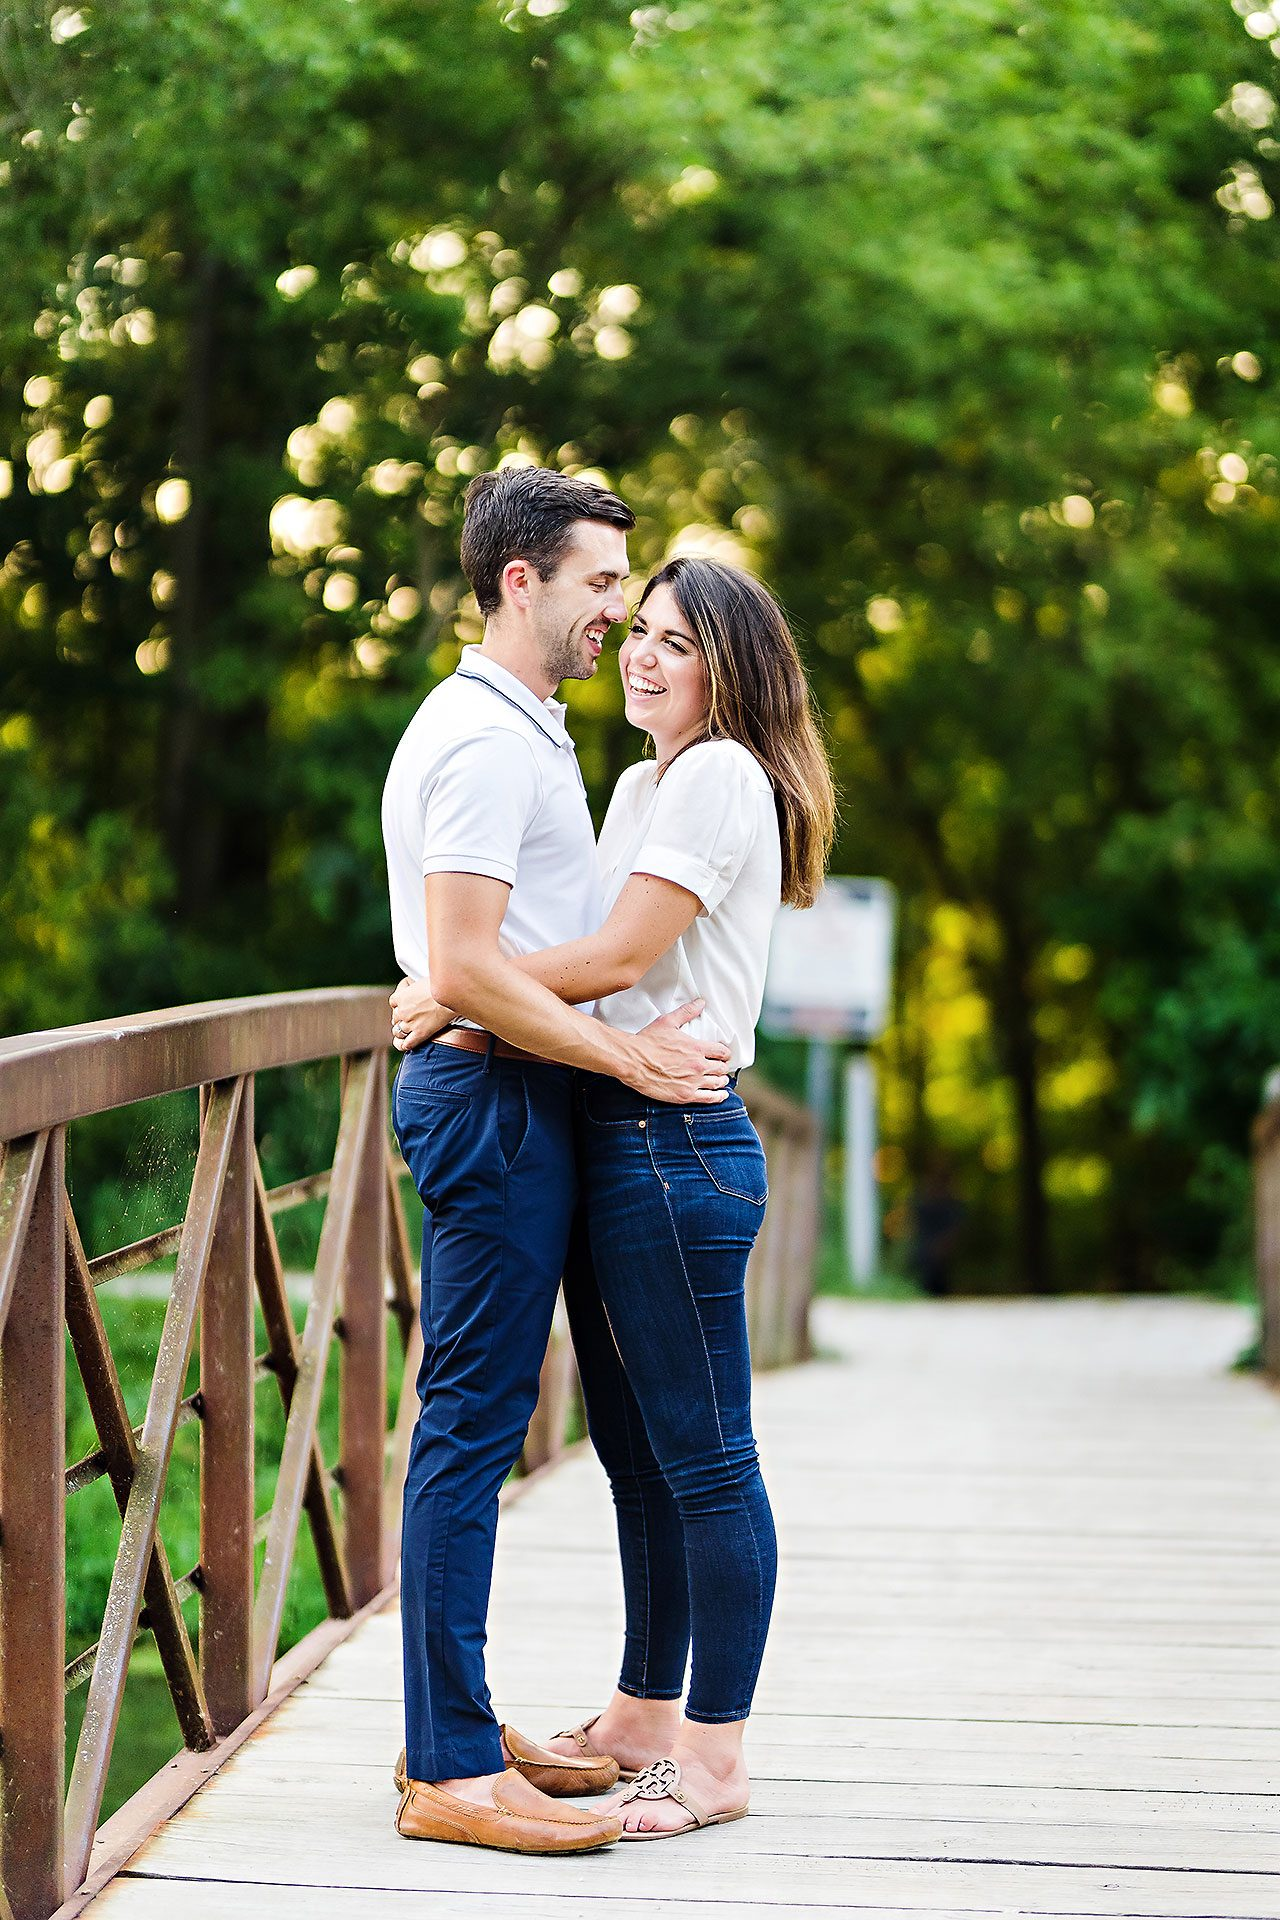 Kate Sawyer Holcomb Gardens Engagement Session 046